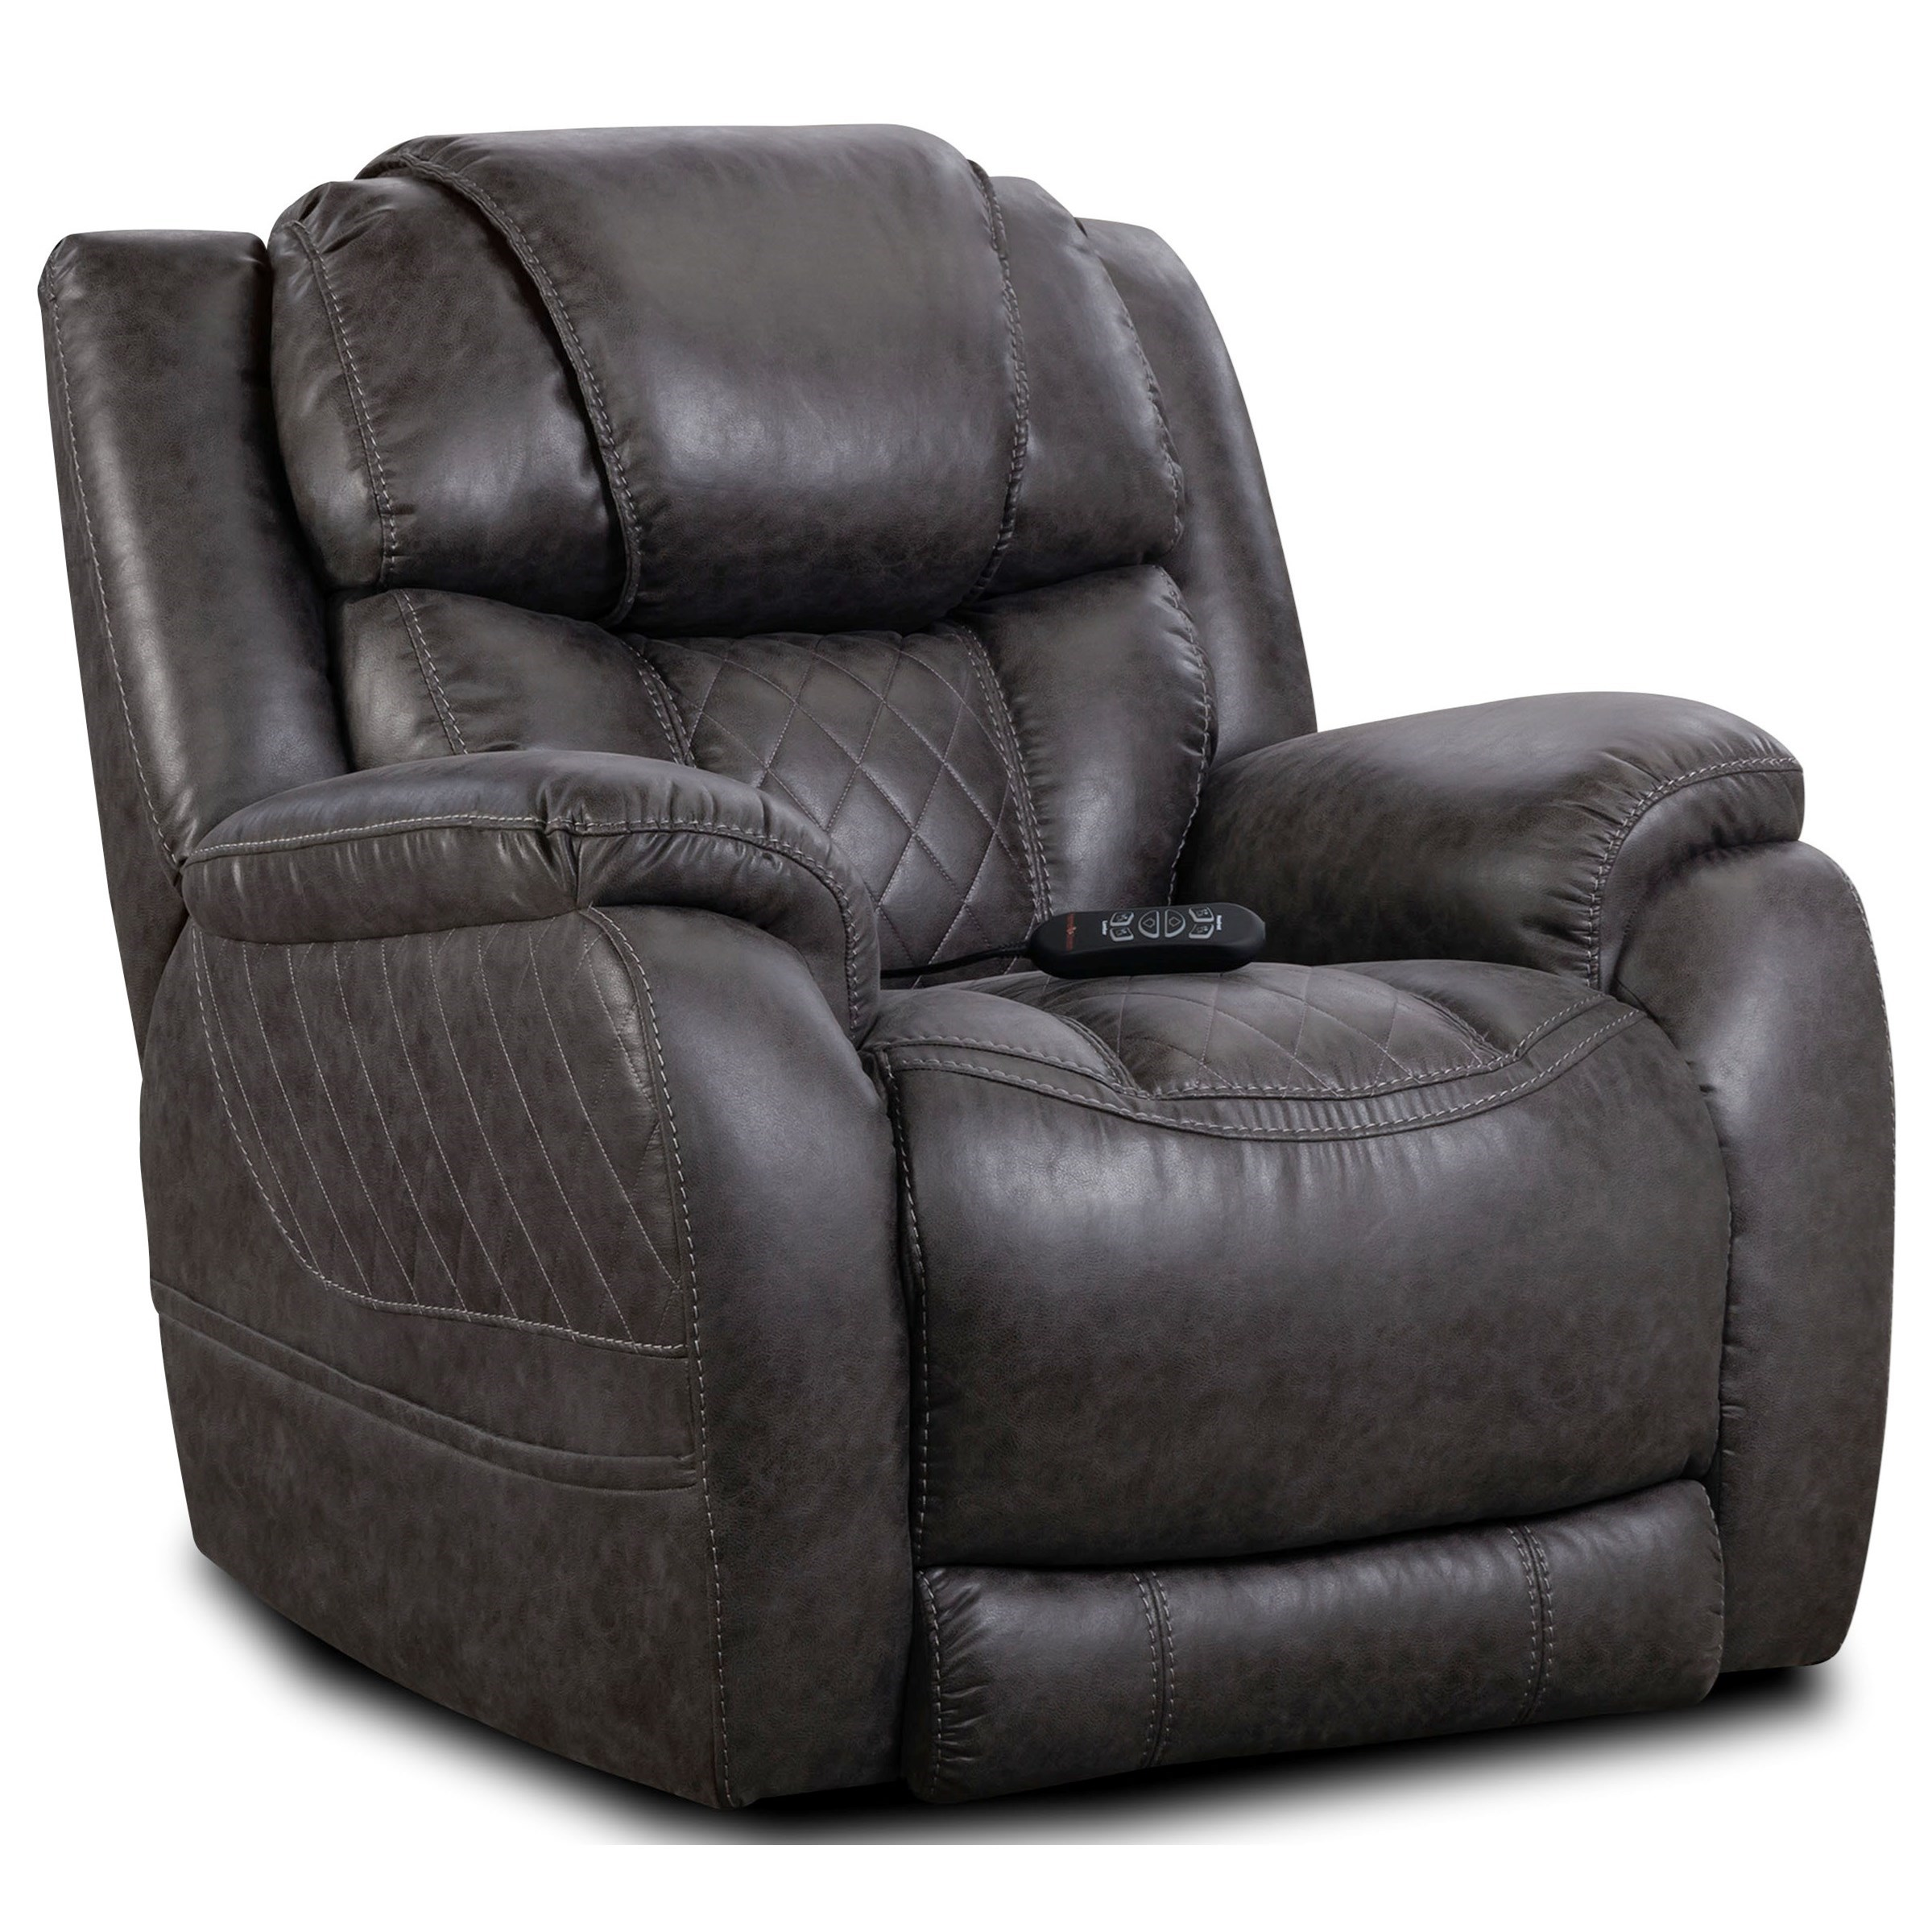 174 Power Wall Saver Recliner by HomeStretch at Wilcox Furniture